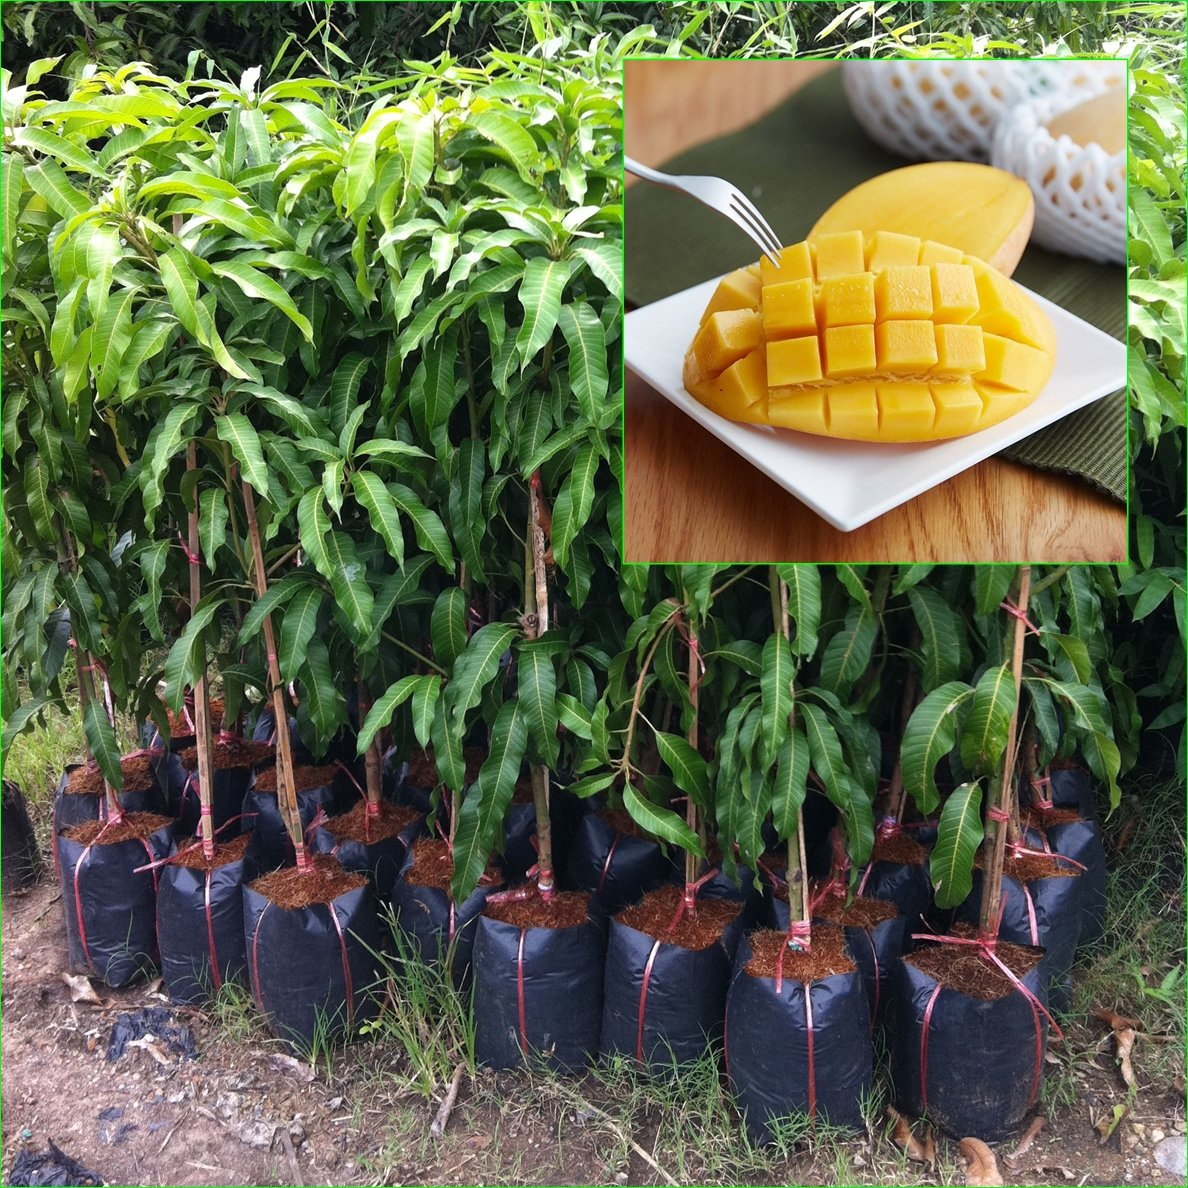 1 GRAFTED Mango Tree plant Nam-Dok-Mai Si Thong 18'' Tall Thai Golden Mango Fruit Juicy Direct from Thailand Free Phytosanitary Cert.